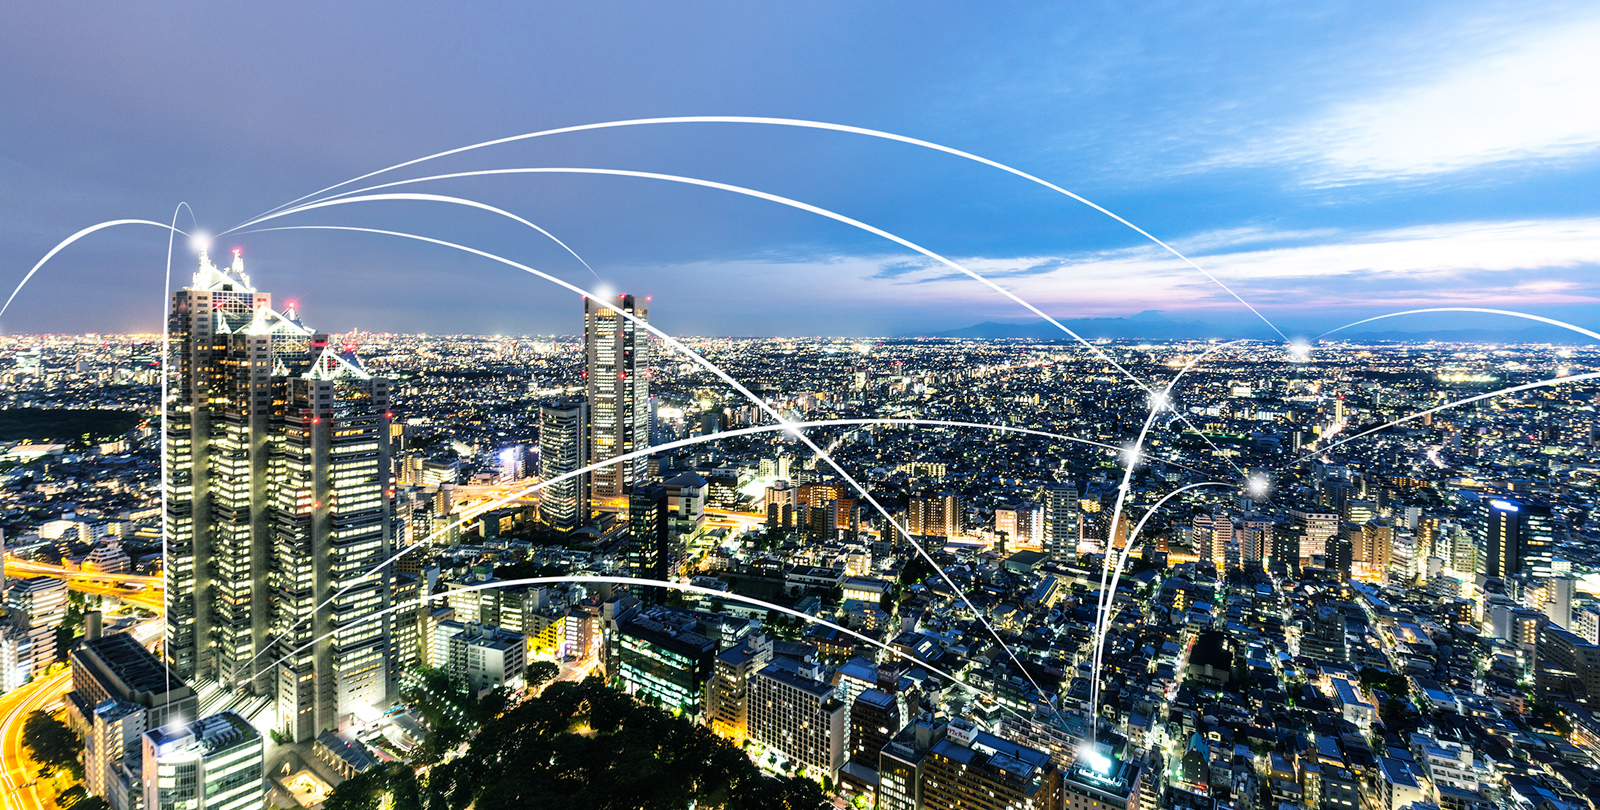 Municipal governments in Asia are engaging the private sector in uniquely collaborative ways to build smart cities.